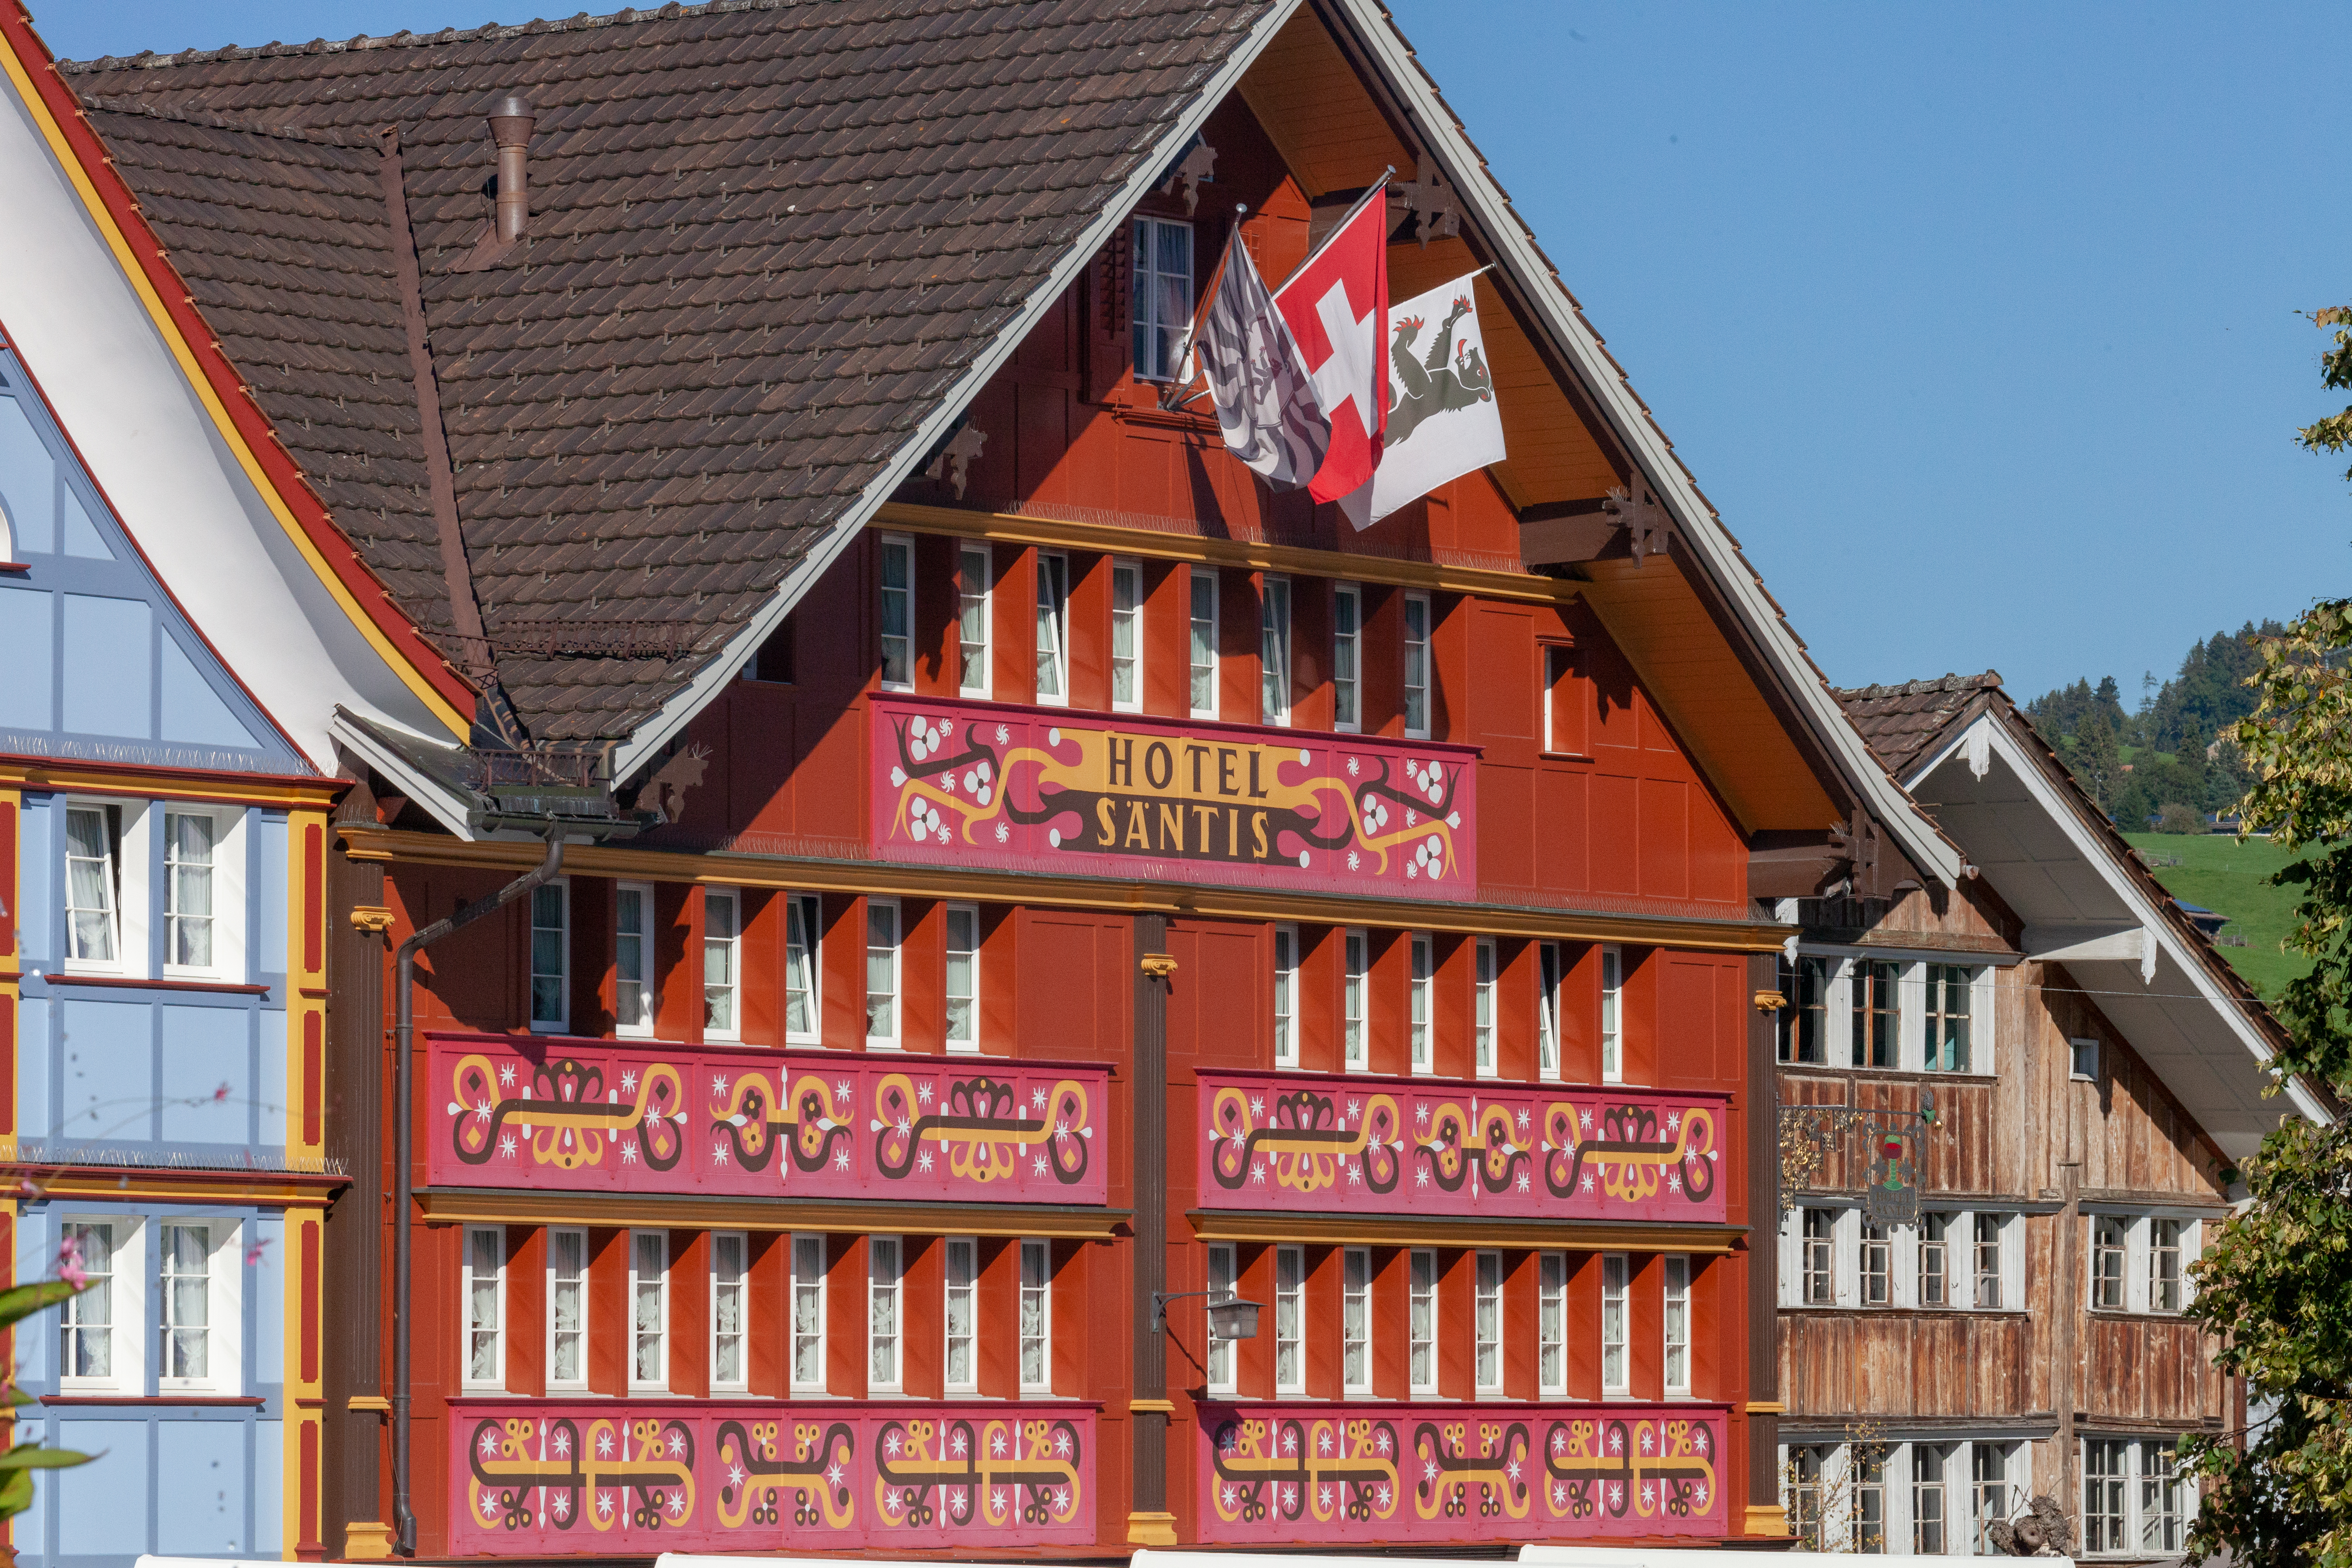 City of Appenzell, house facades